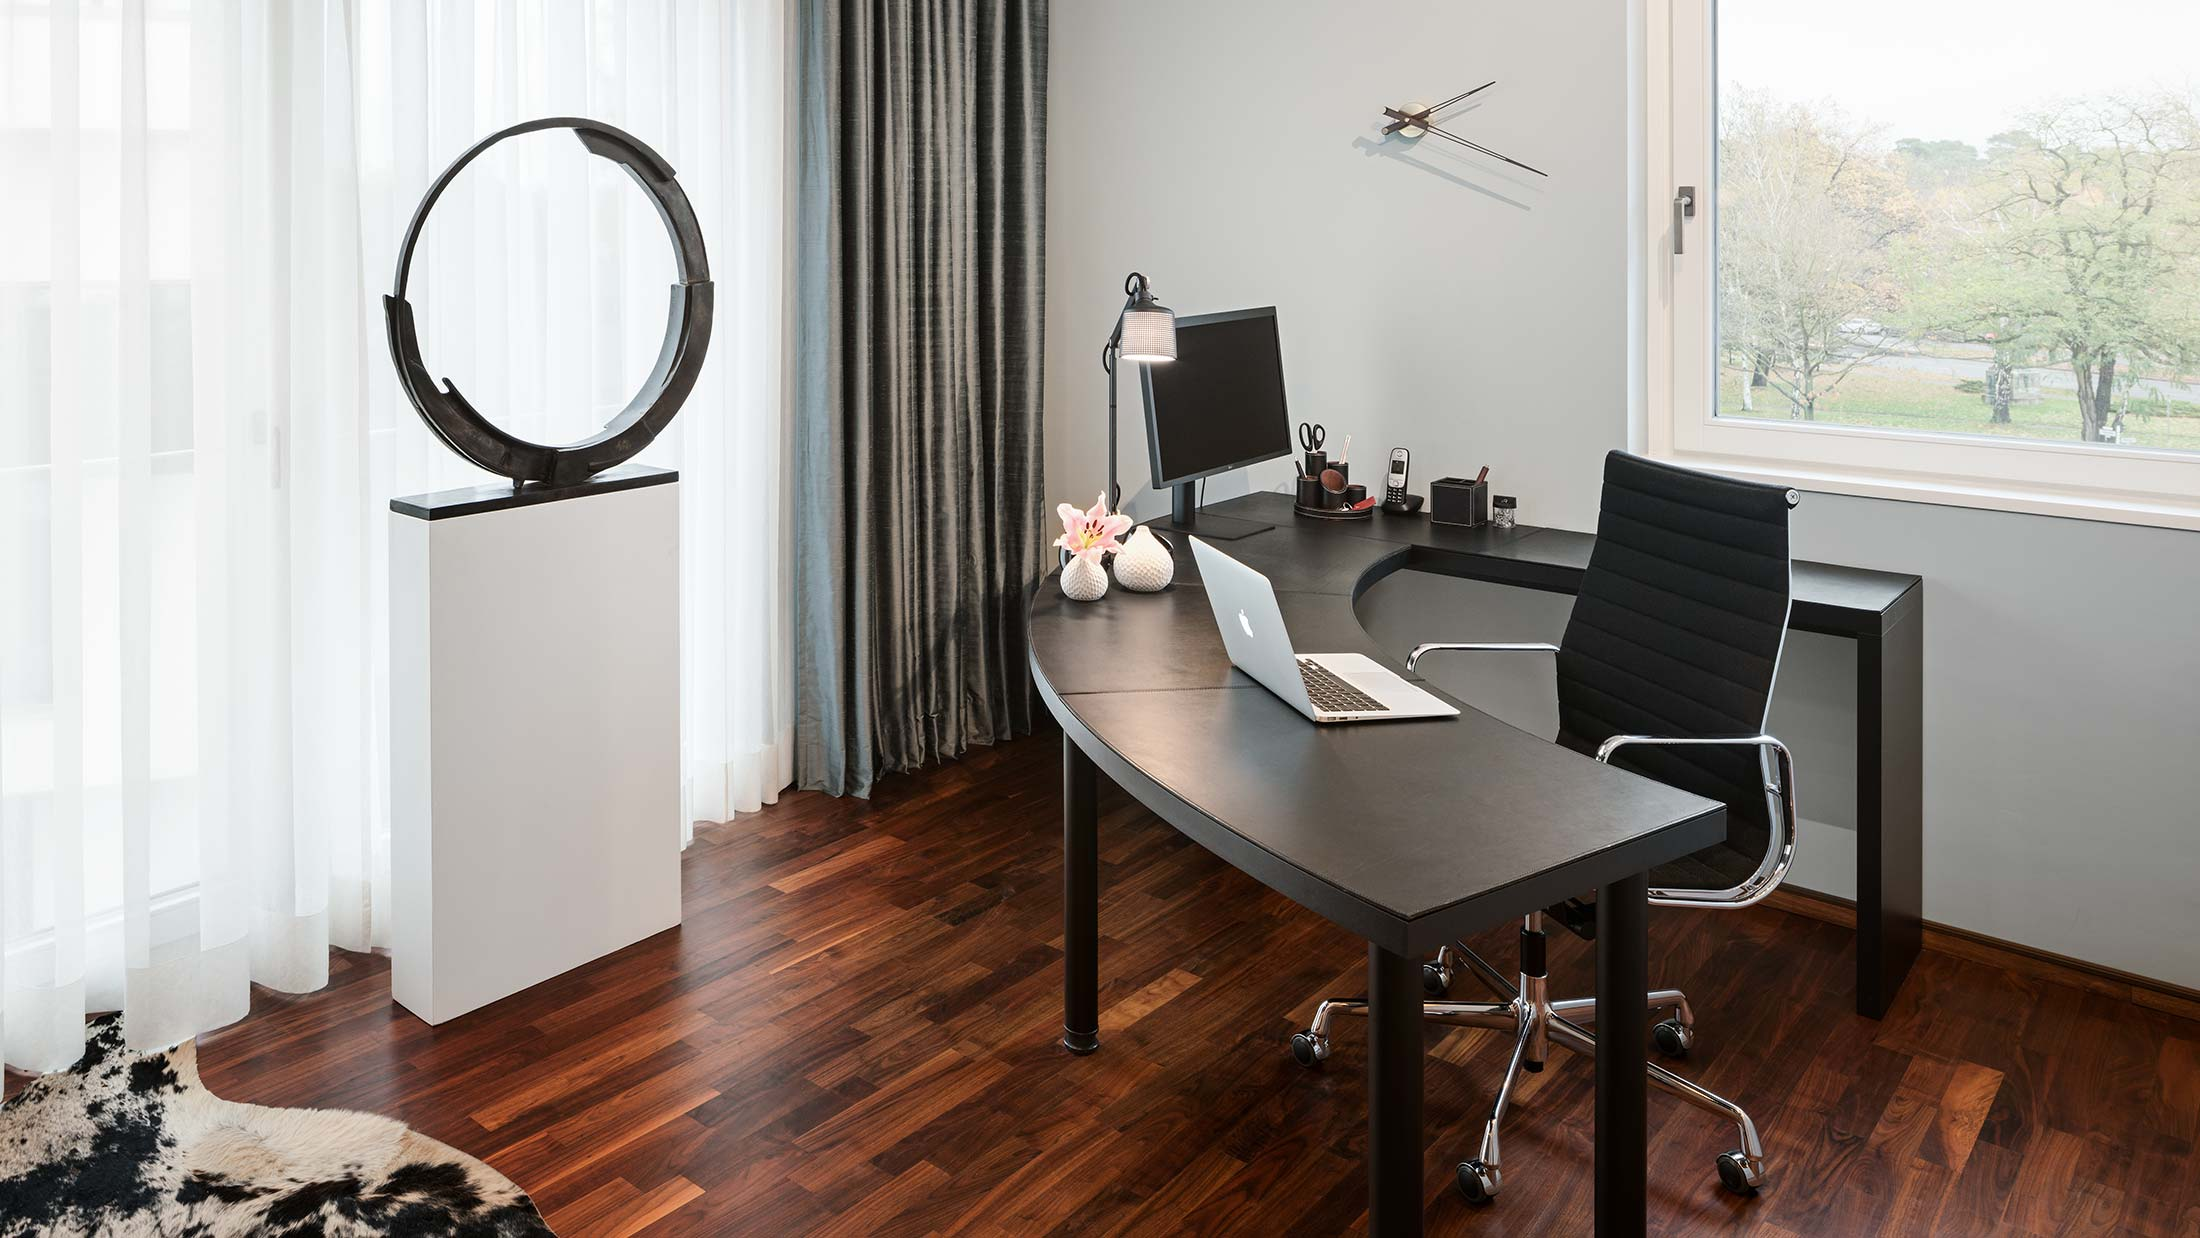 Penthouse Fünf Morgen: Home-Office Arbeitsplatz